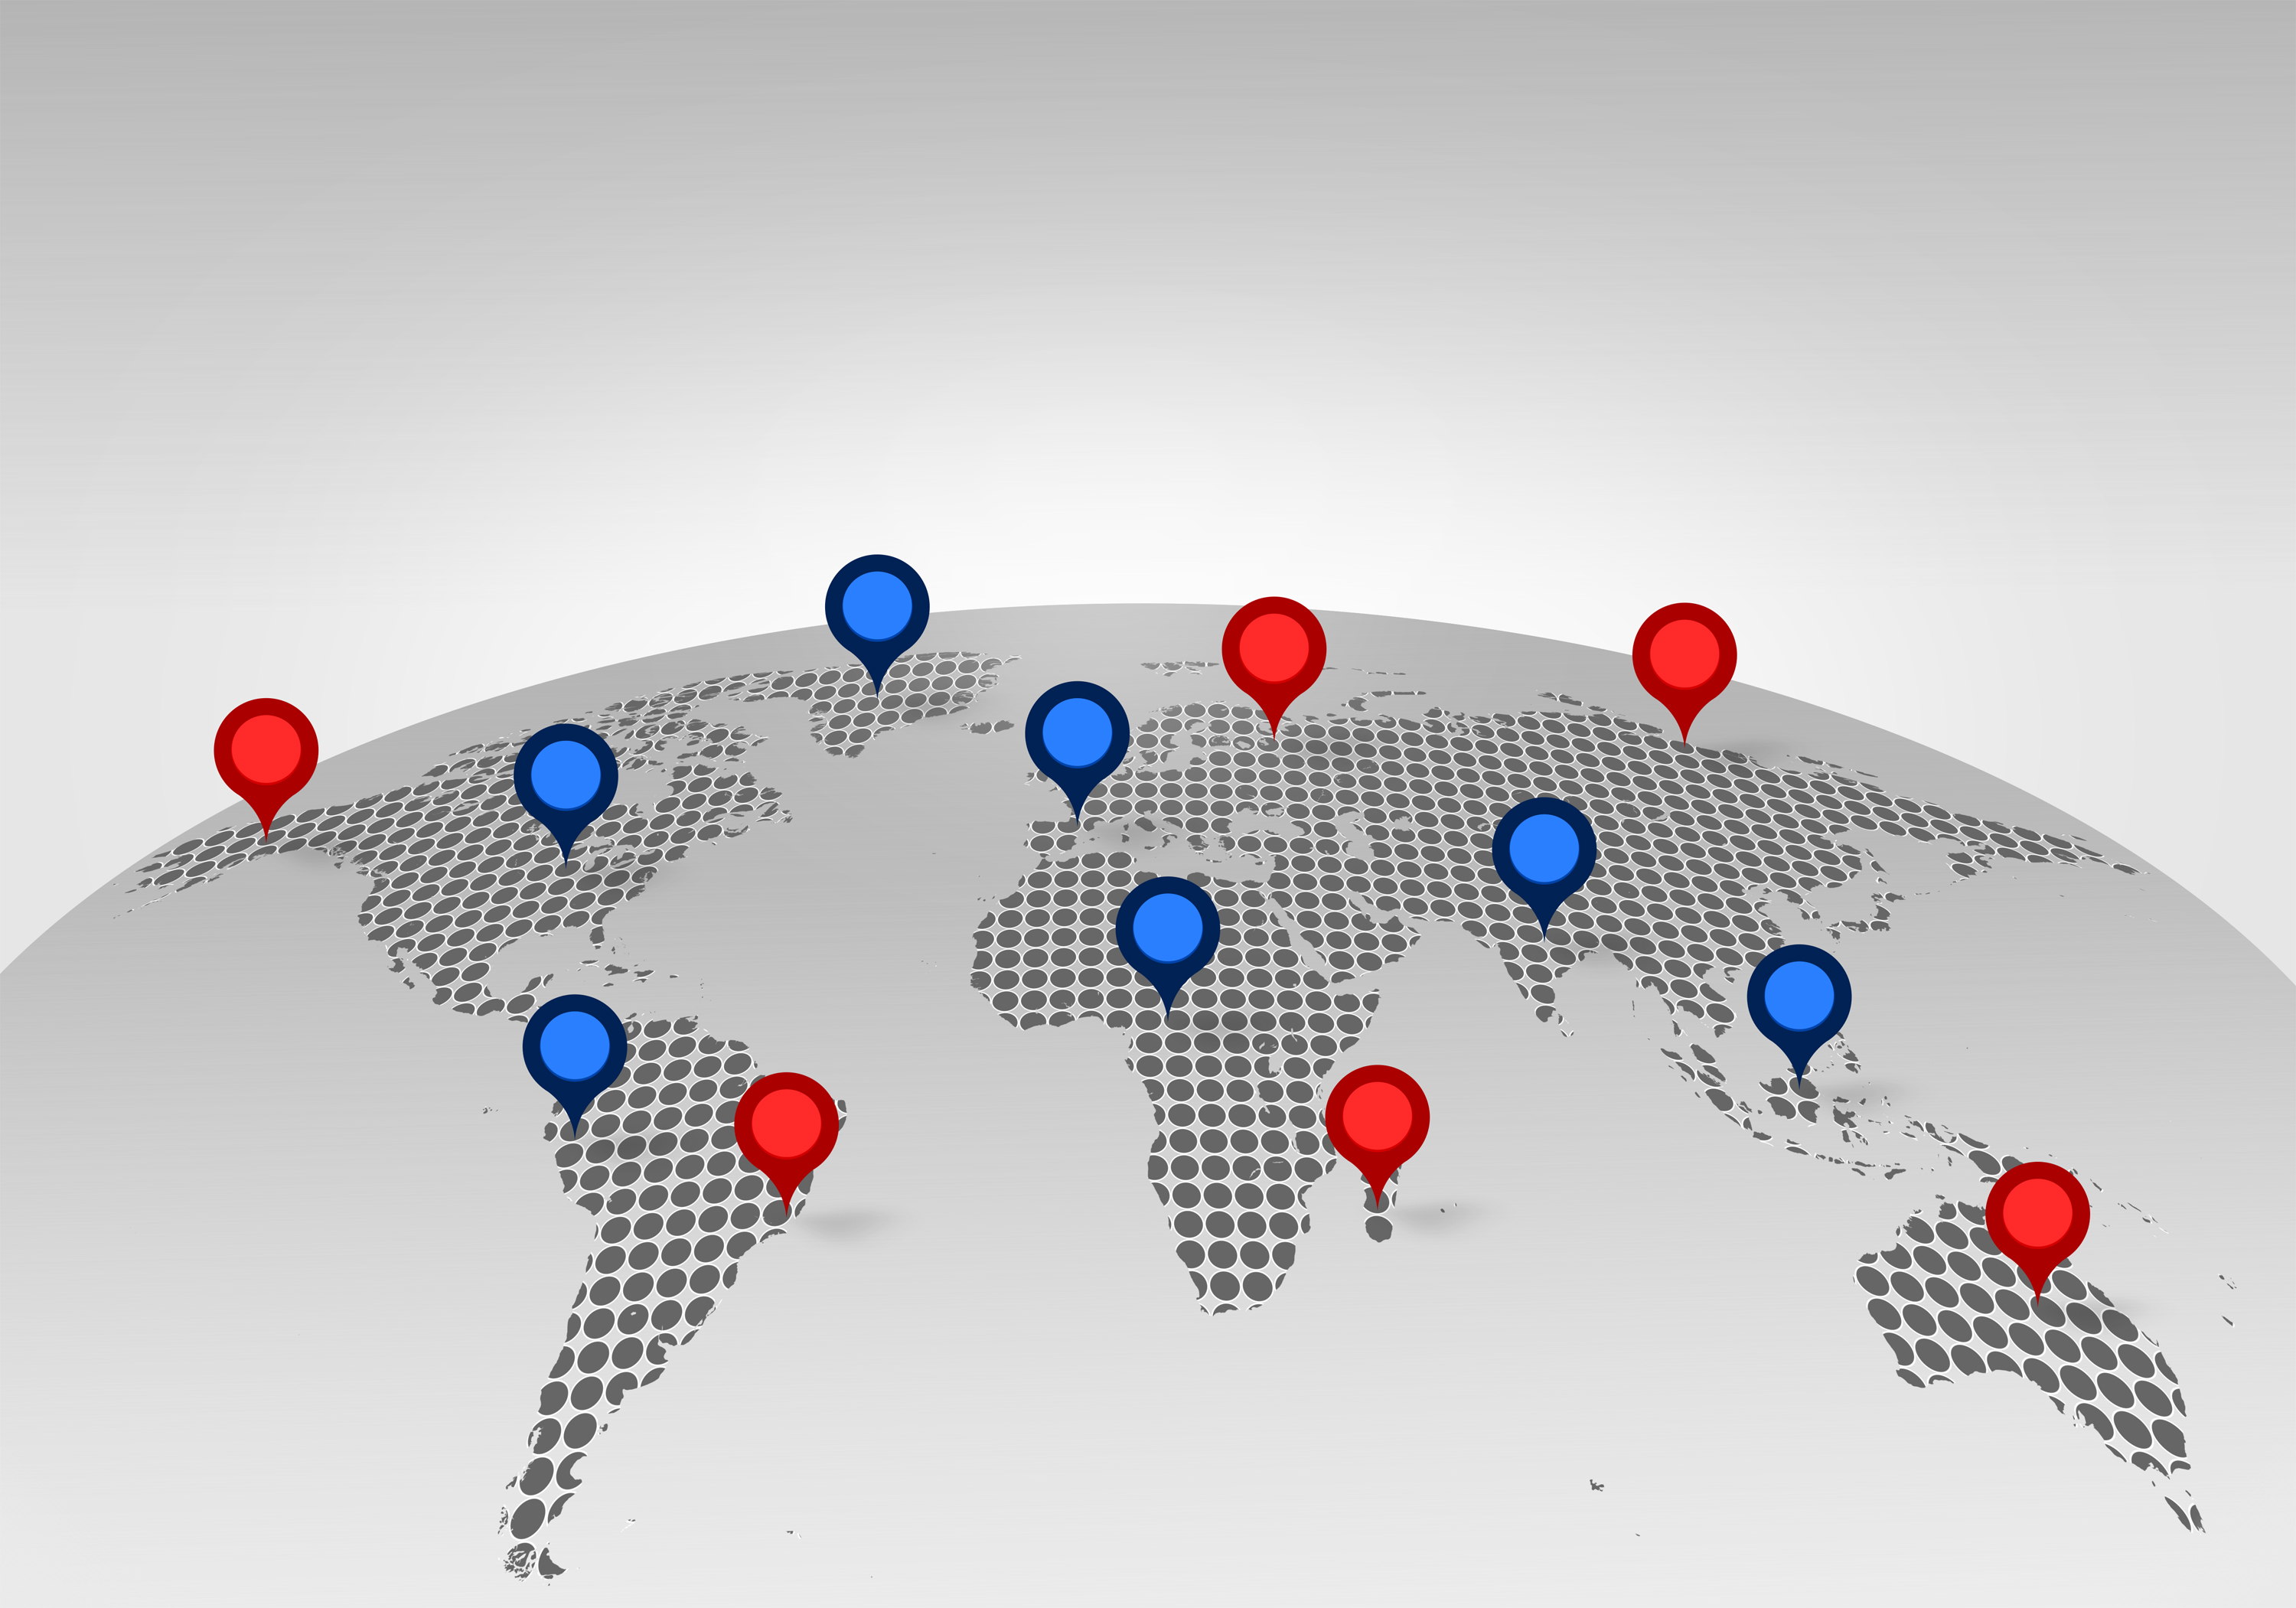 World Map with Place Markers - Globalization Concept, Abstract, Perspective, Red, Pushpin, HQ Photo